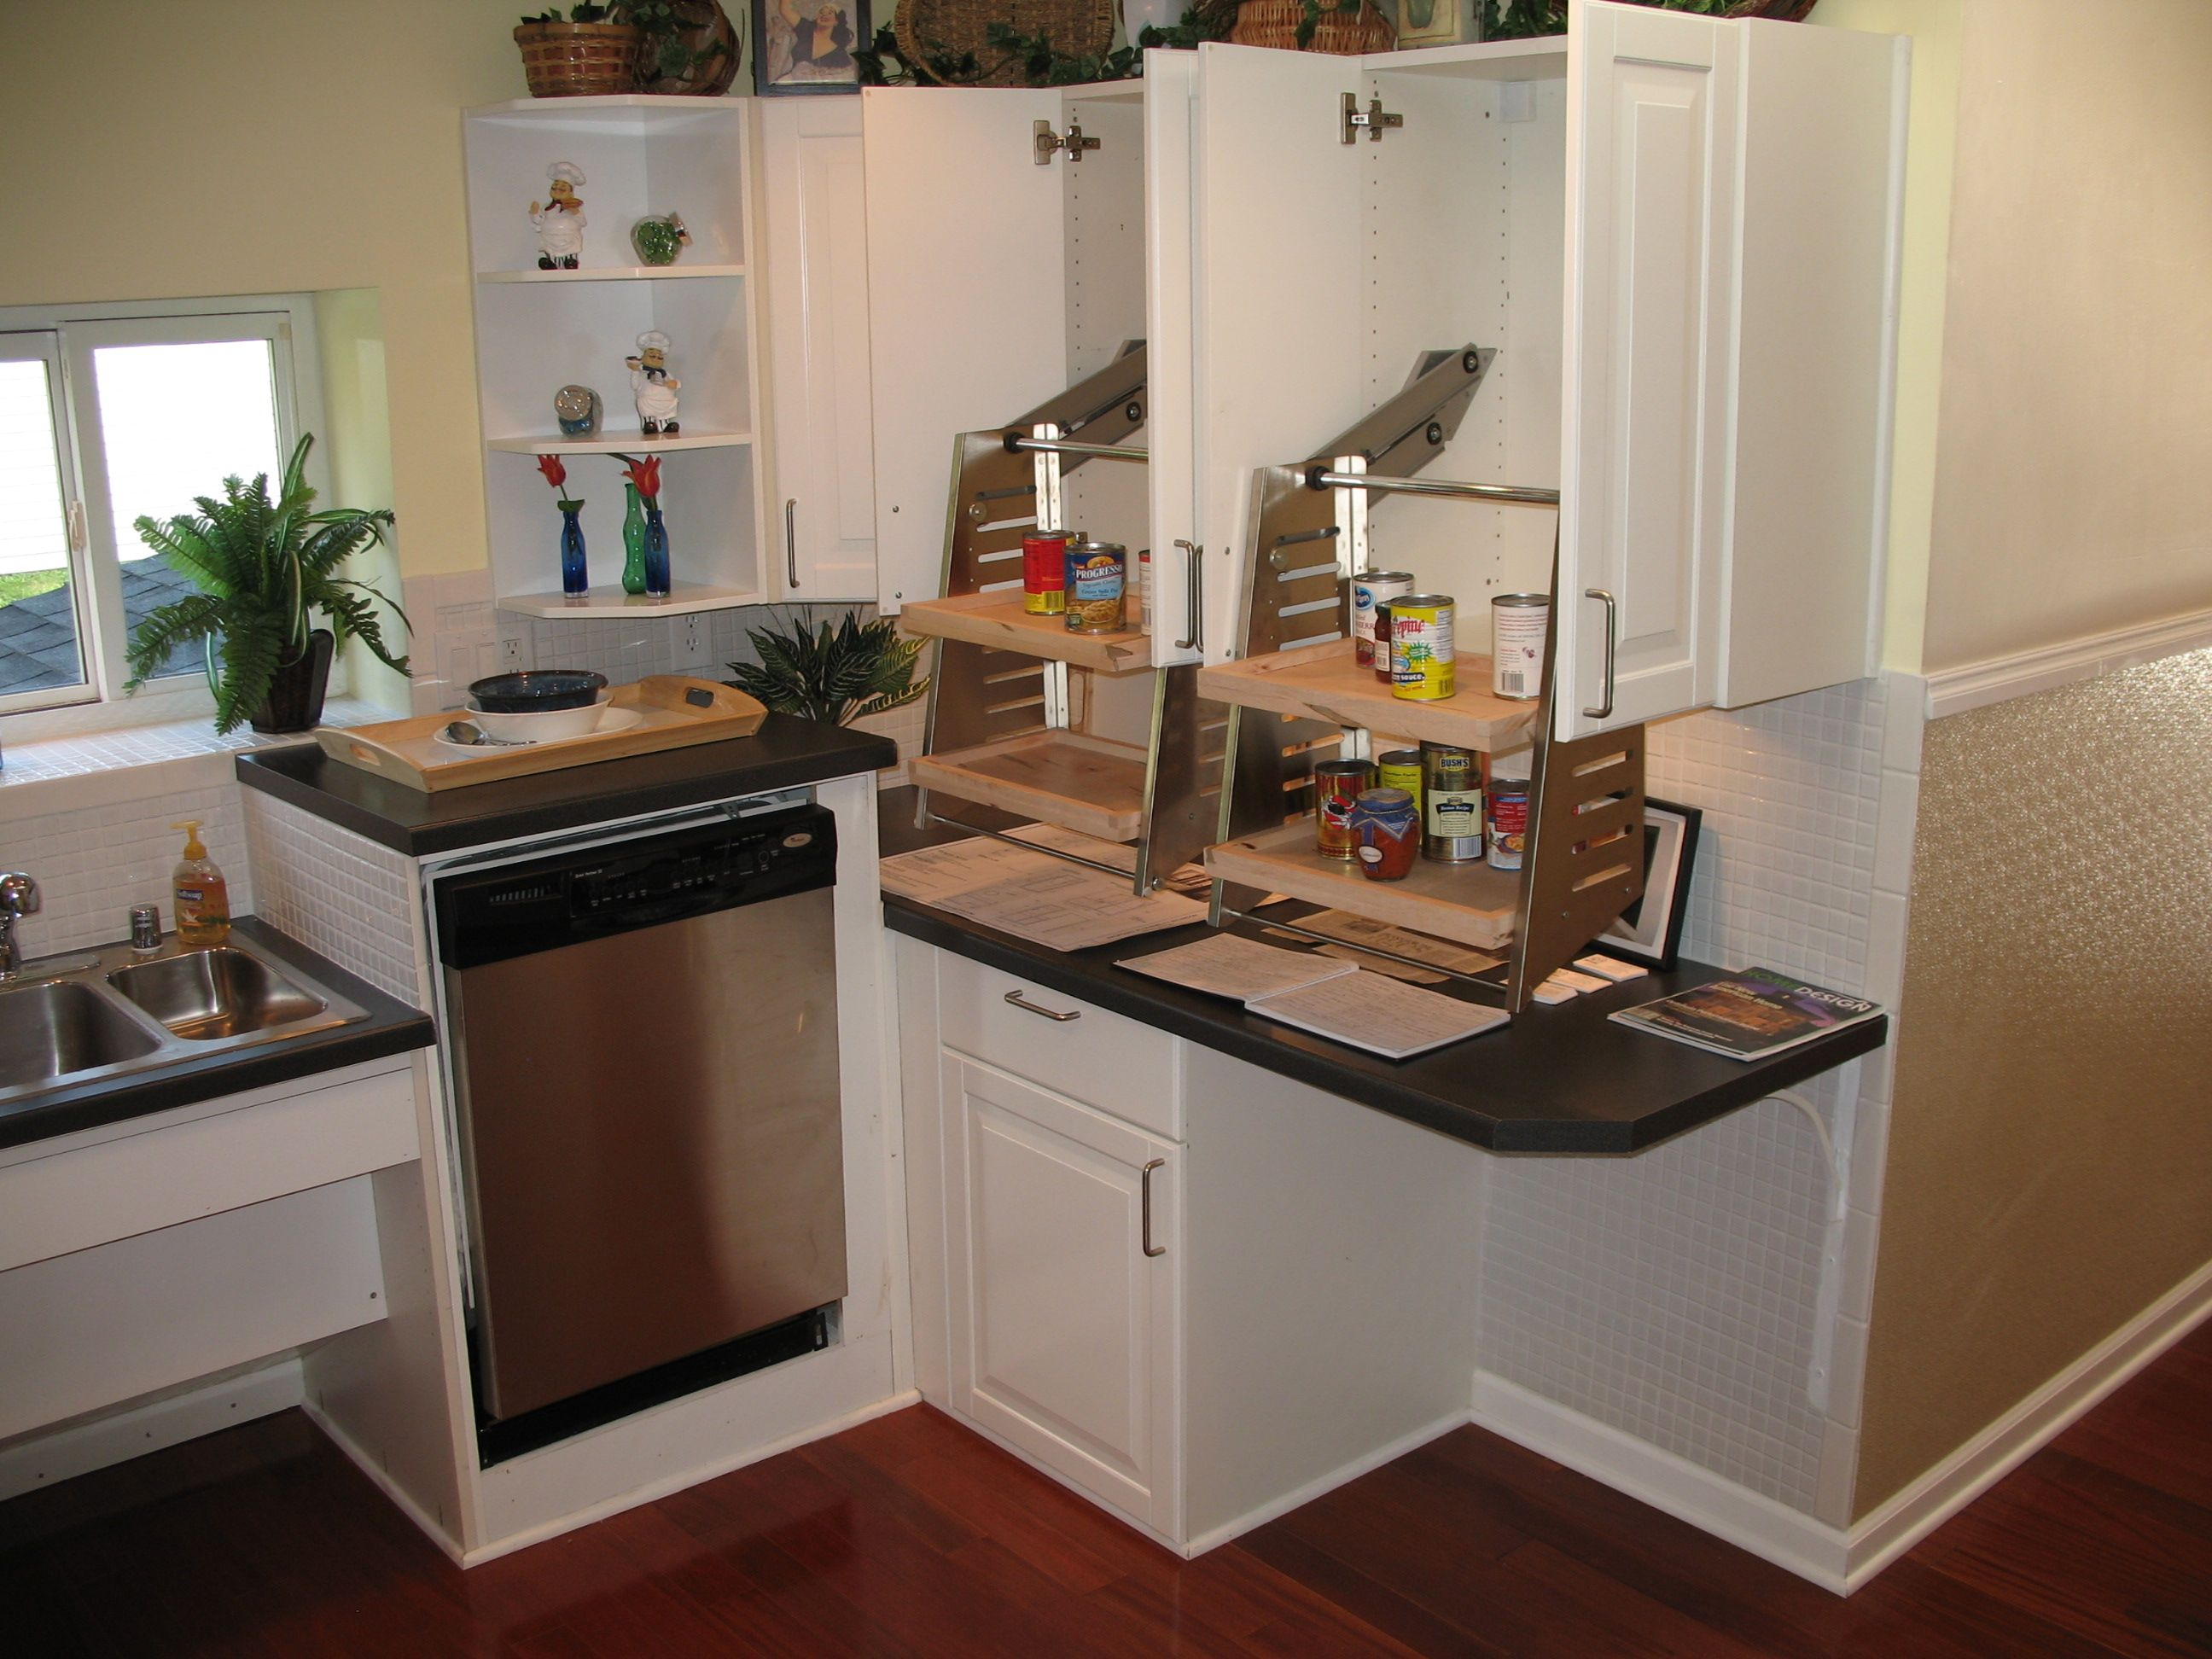 Universal Design Kitchen Cabinets I Love The Different Count Heights The Slight Raise In